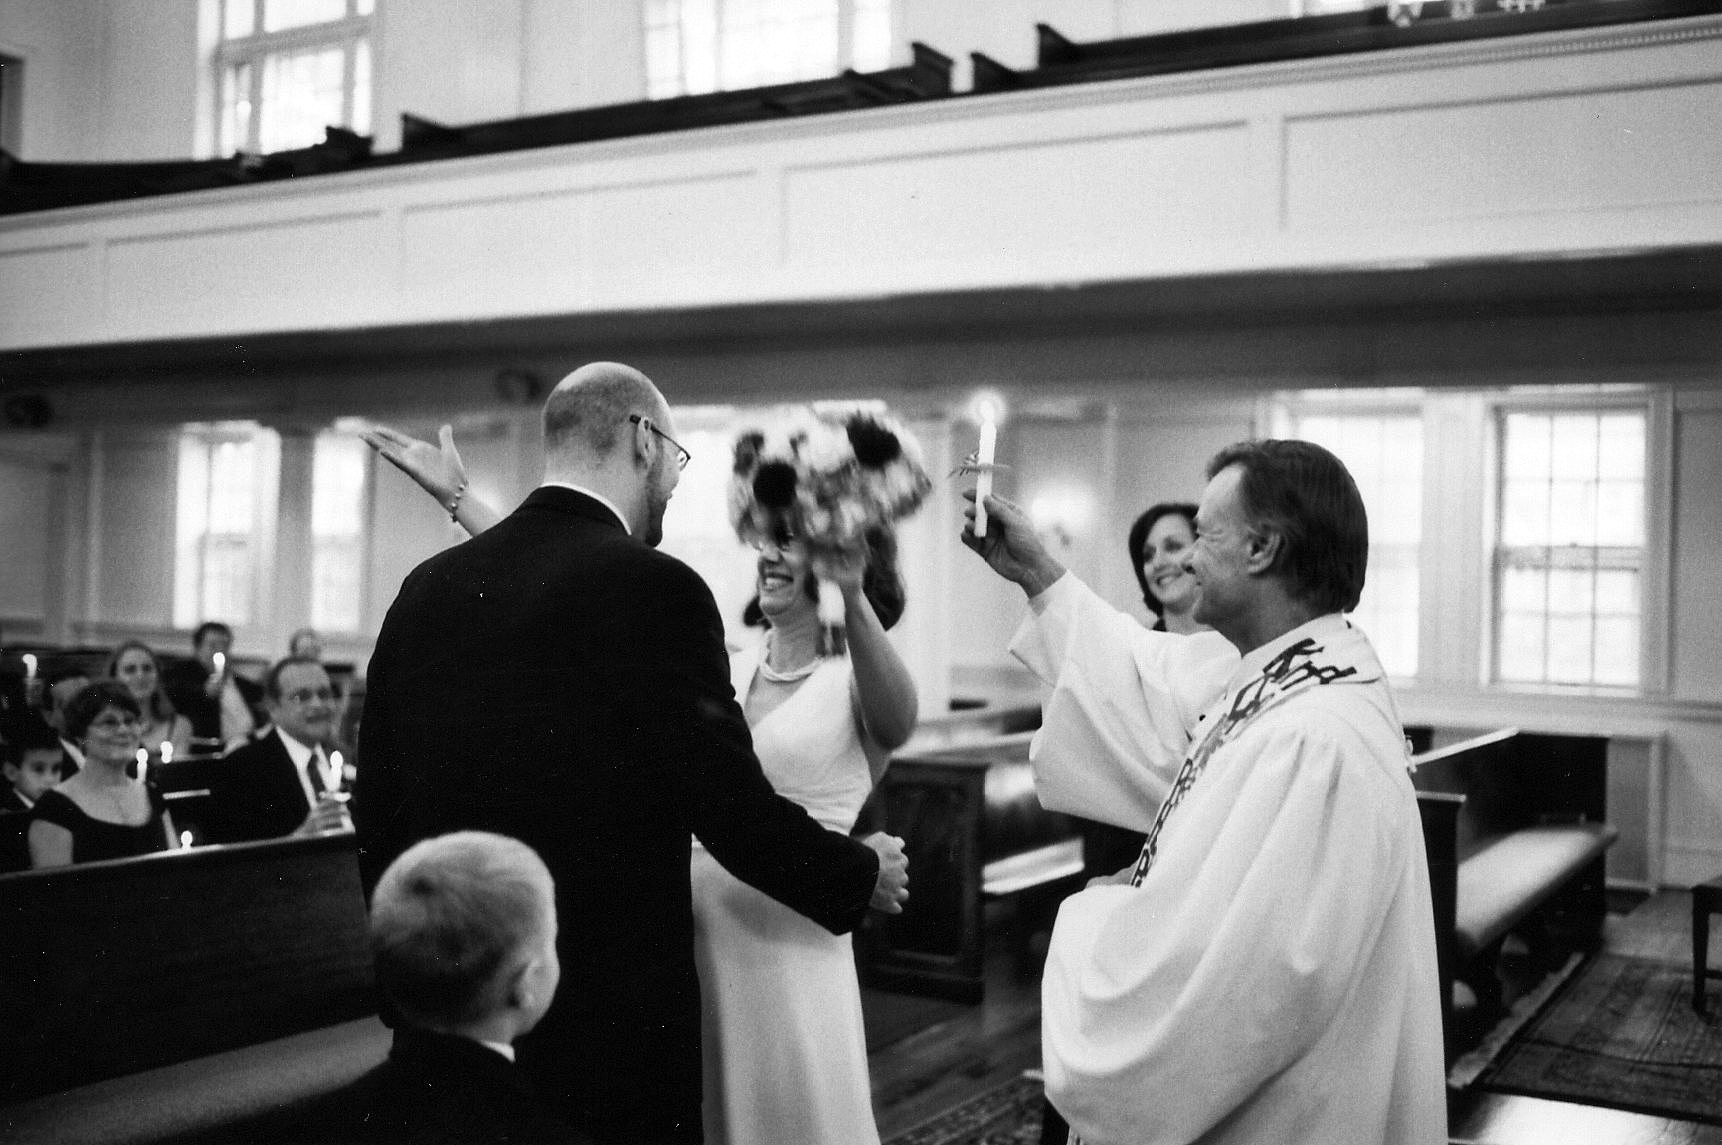 """You may kiss the bride.""  To get this close, I asked the celebrant about his policy on photographing during the ceremony."